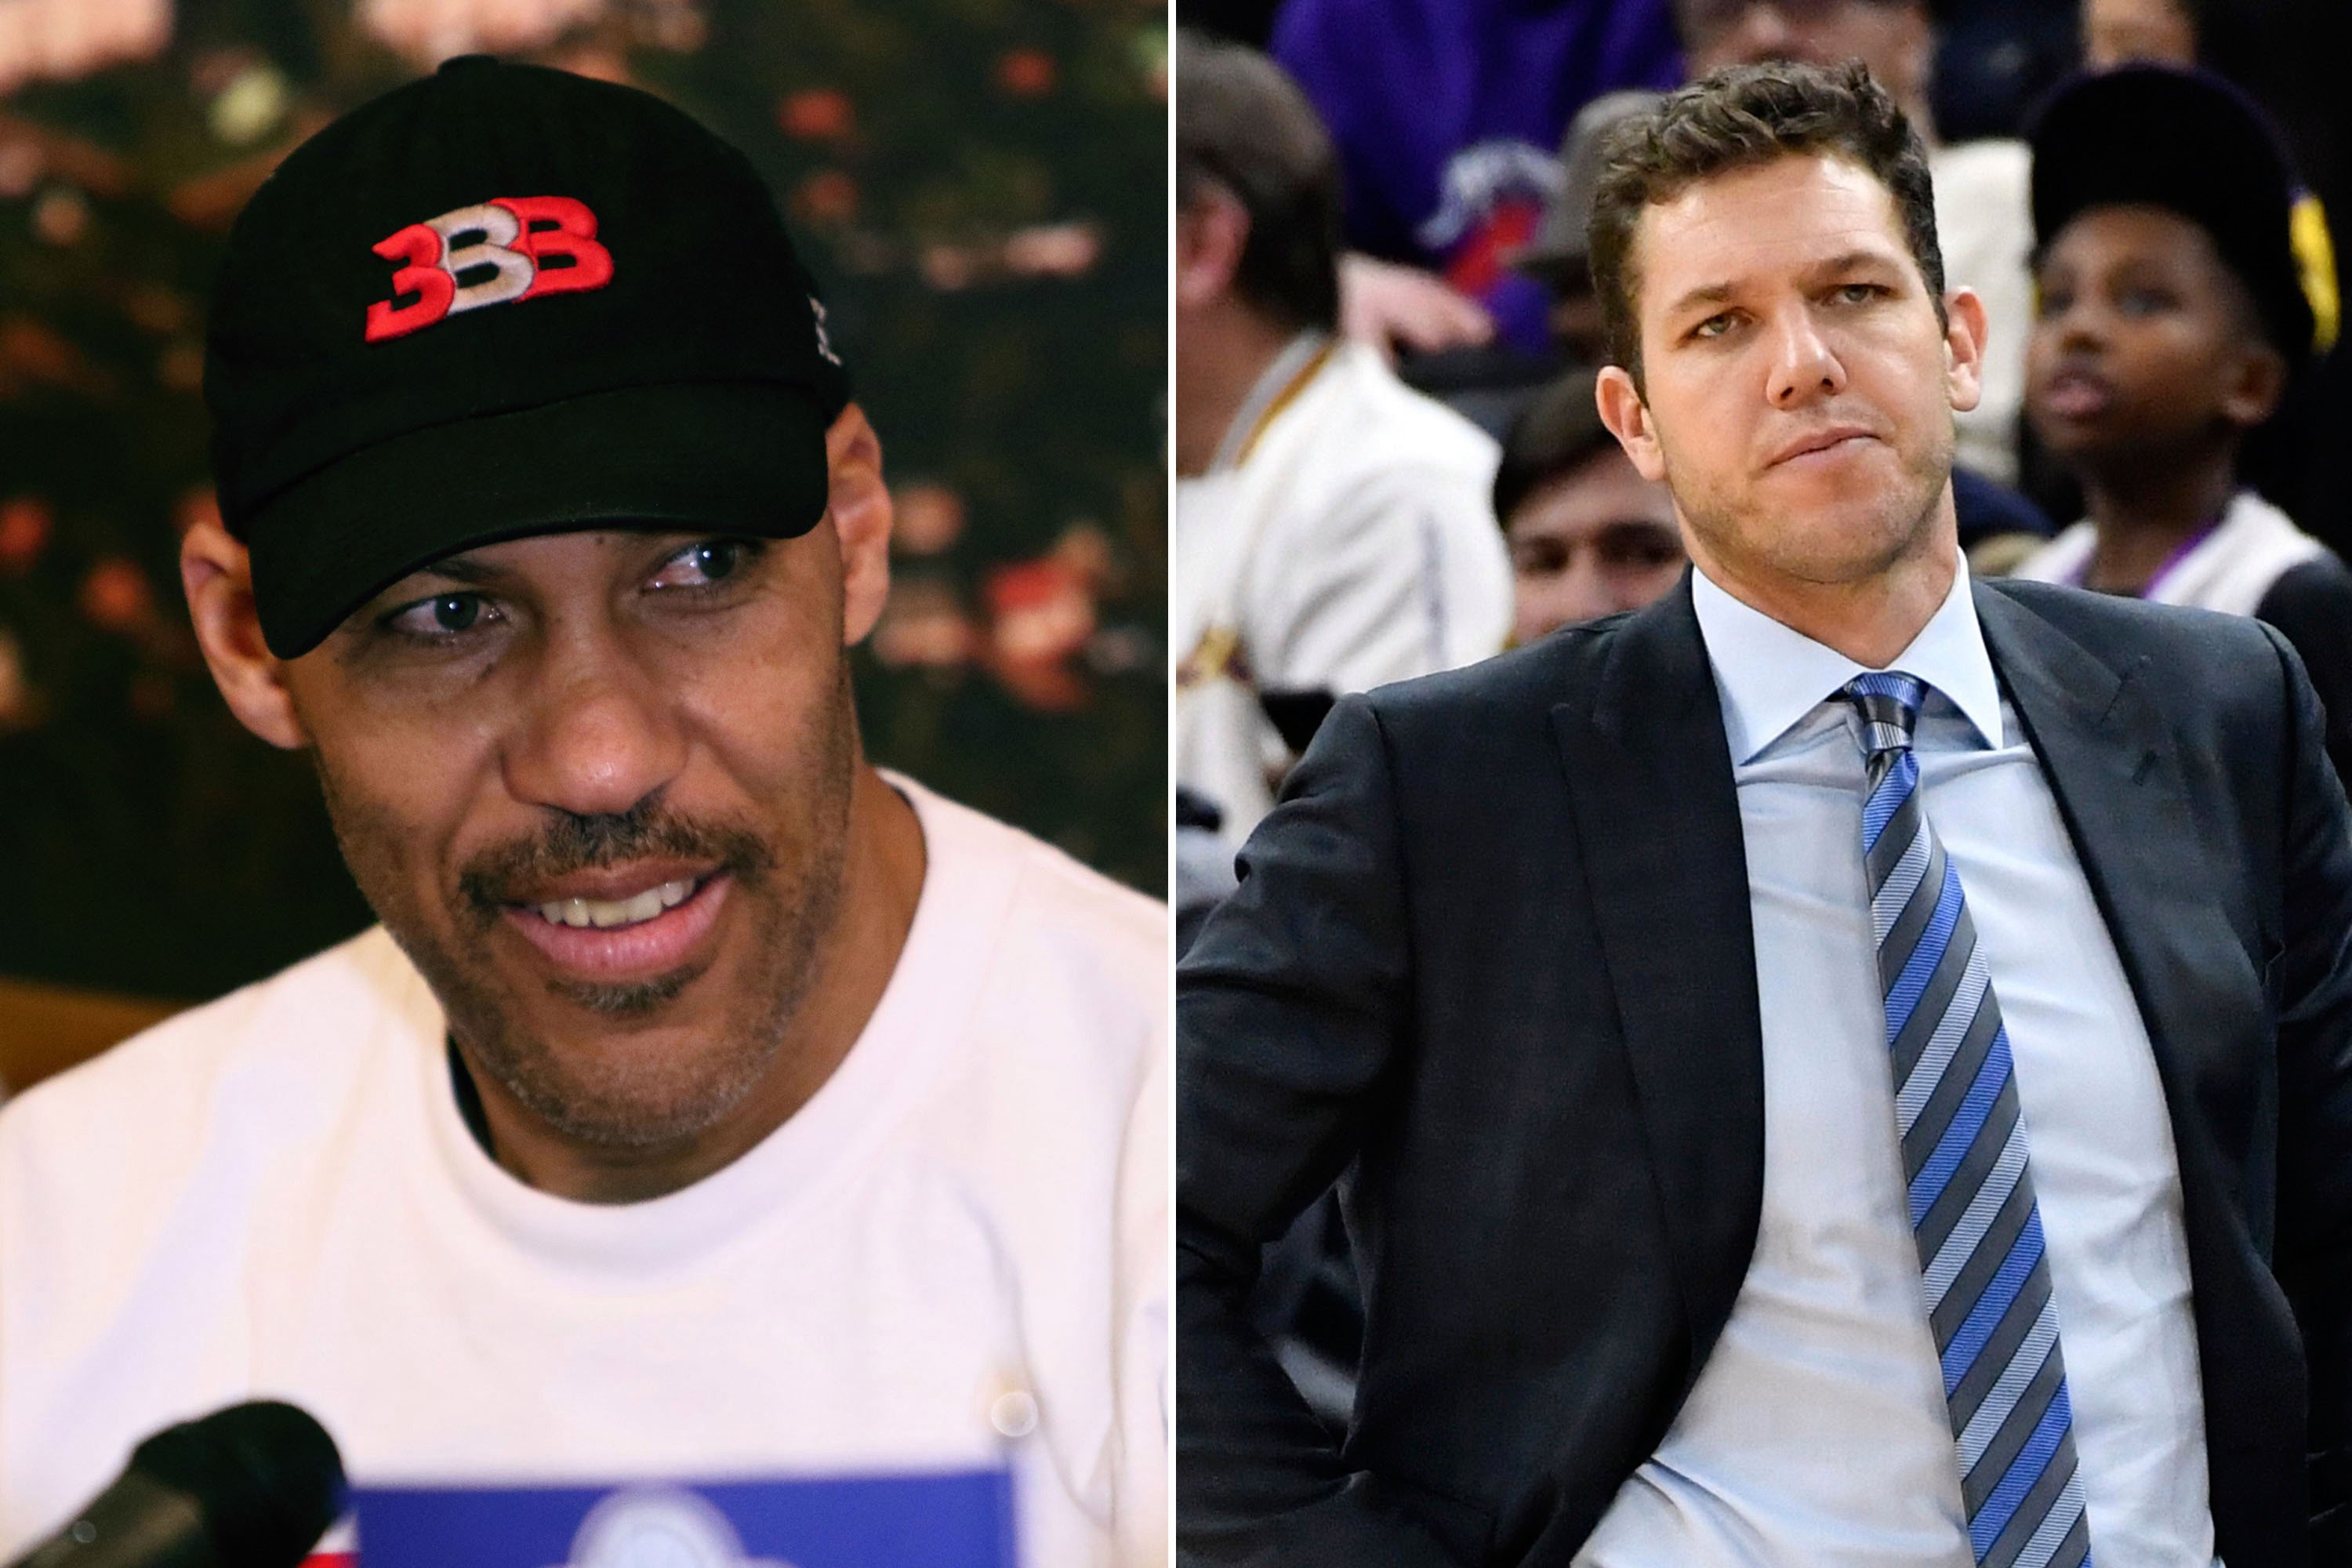 LaVar Ball launches attack aiming for Luke Walton's head